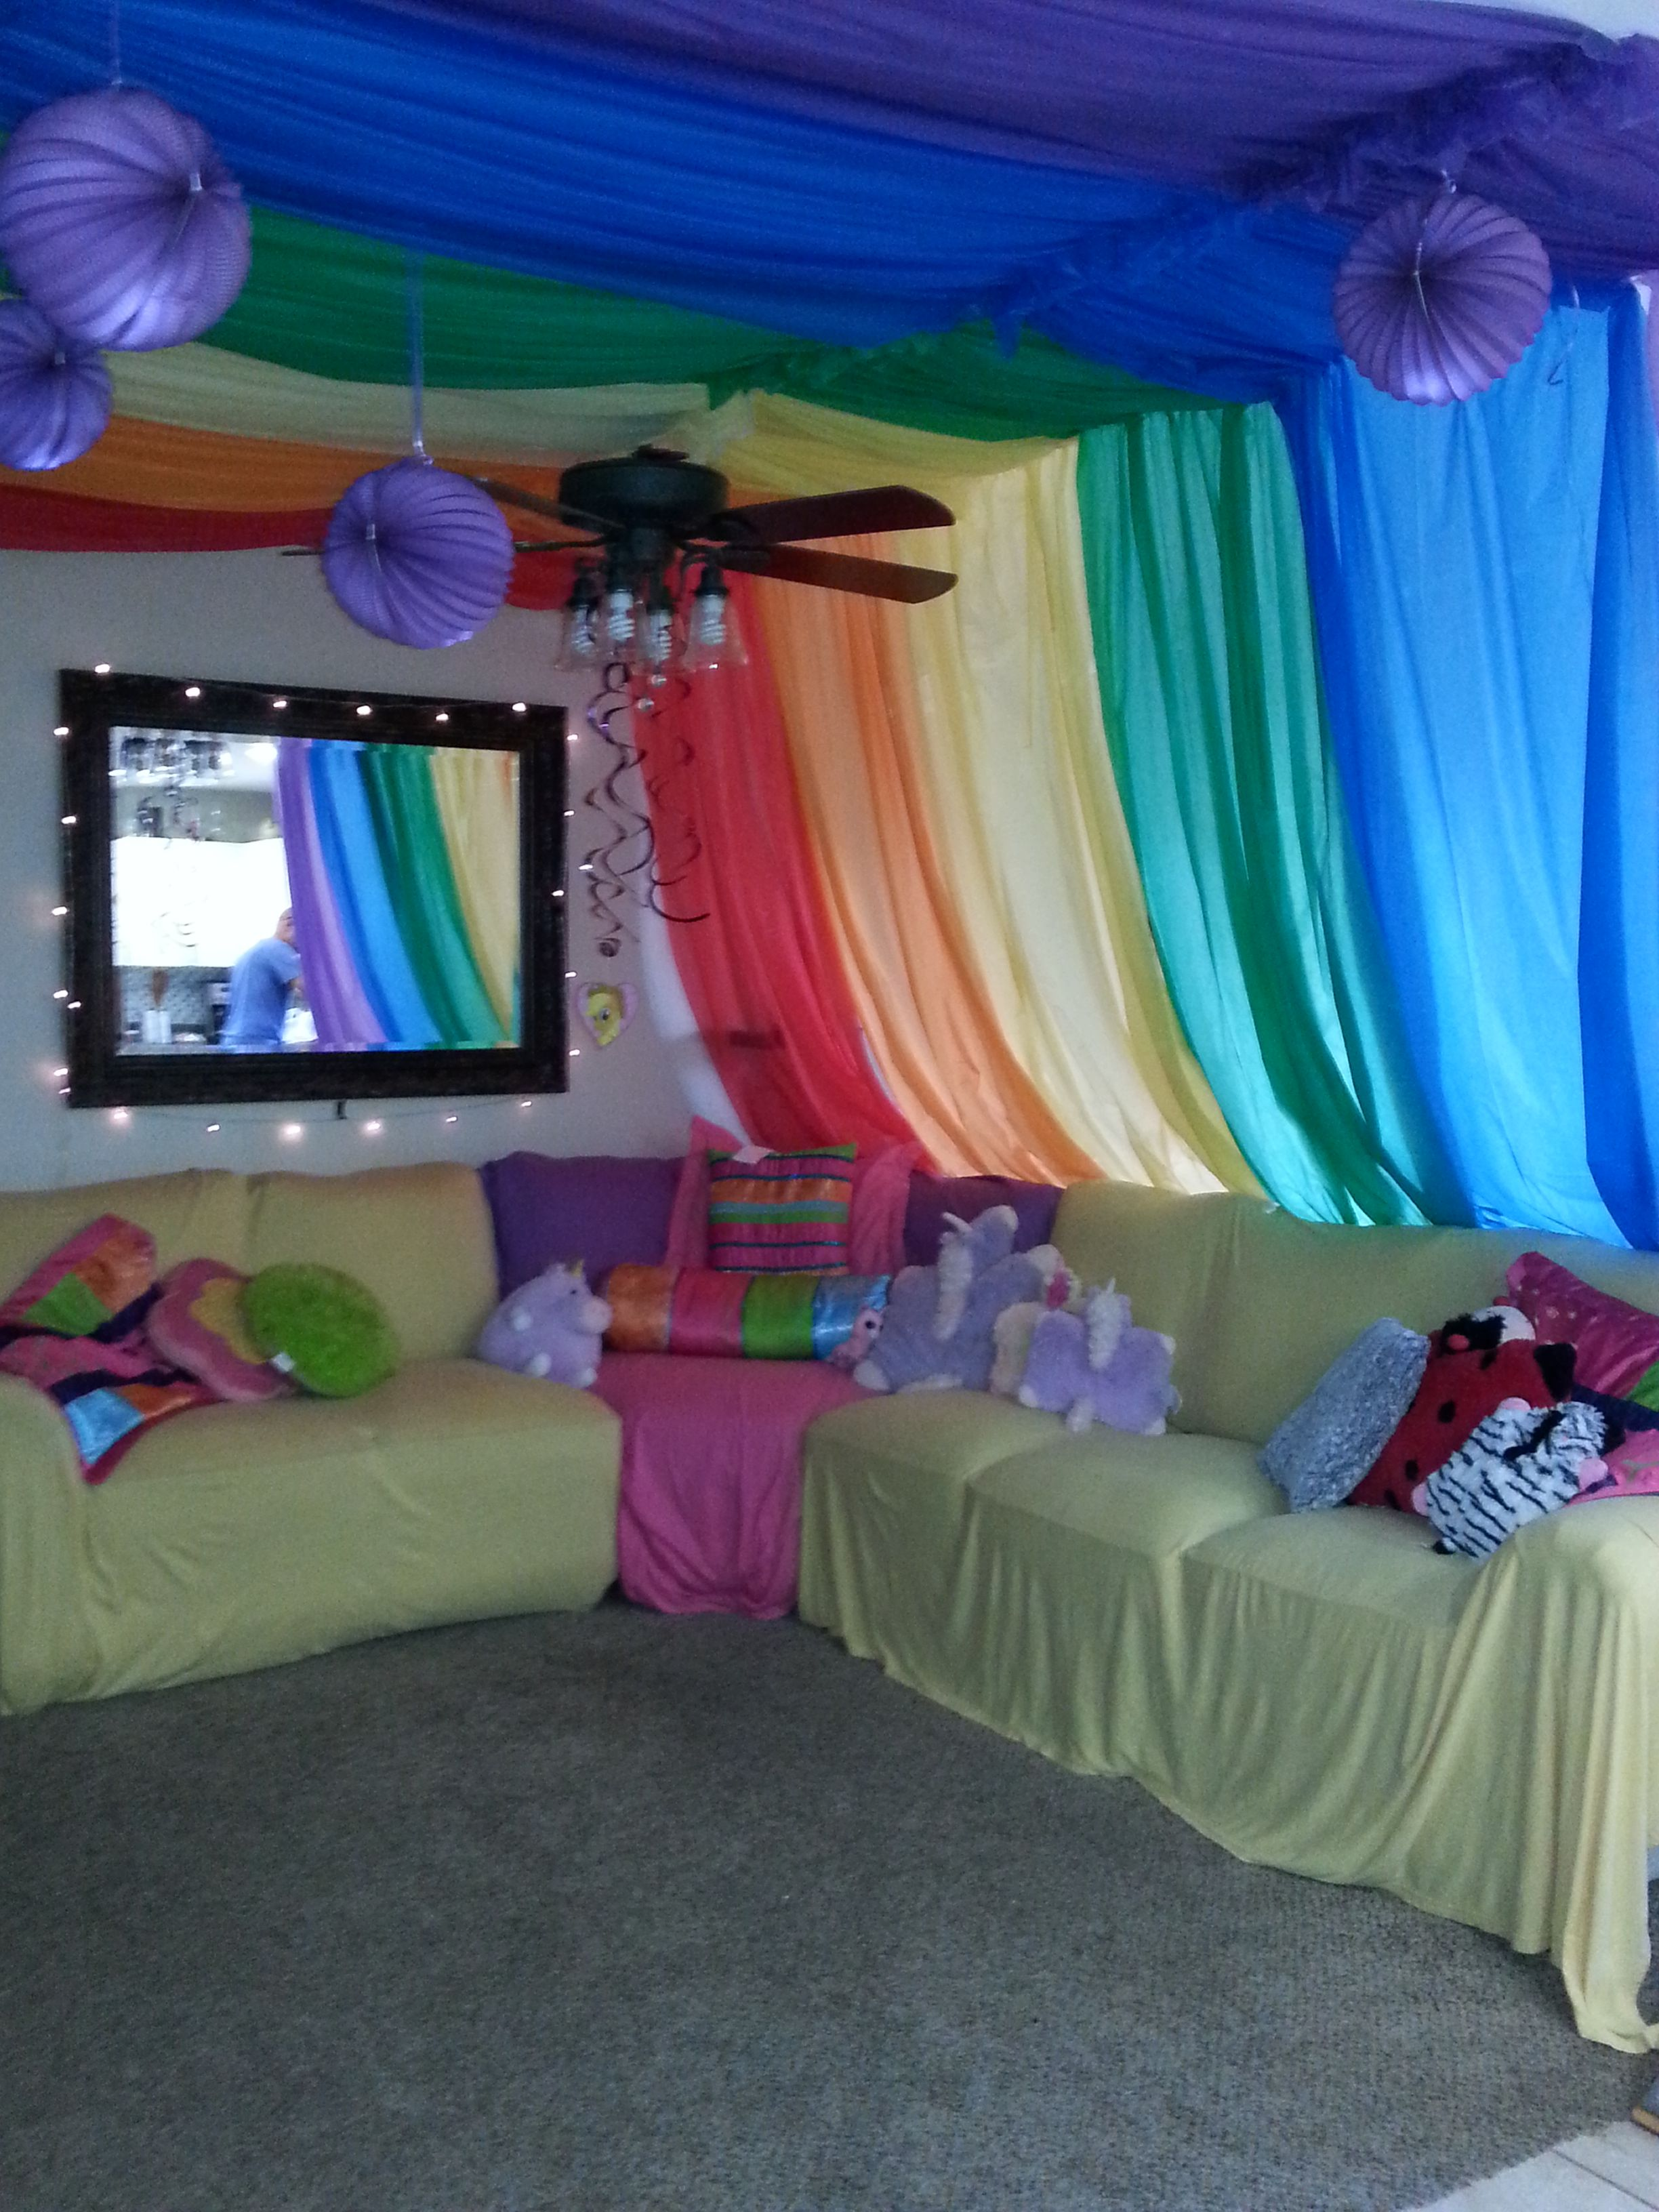 rainbow unicorn sleepover party threw down air mattresses with